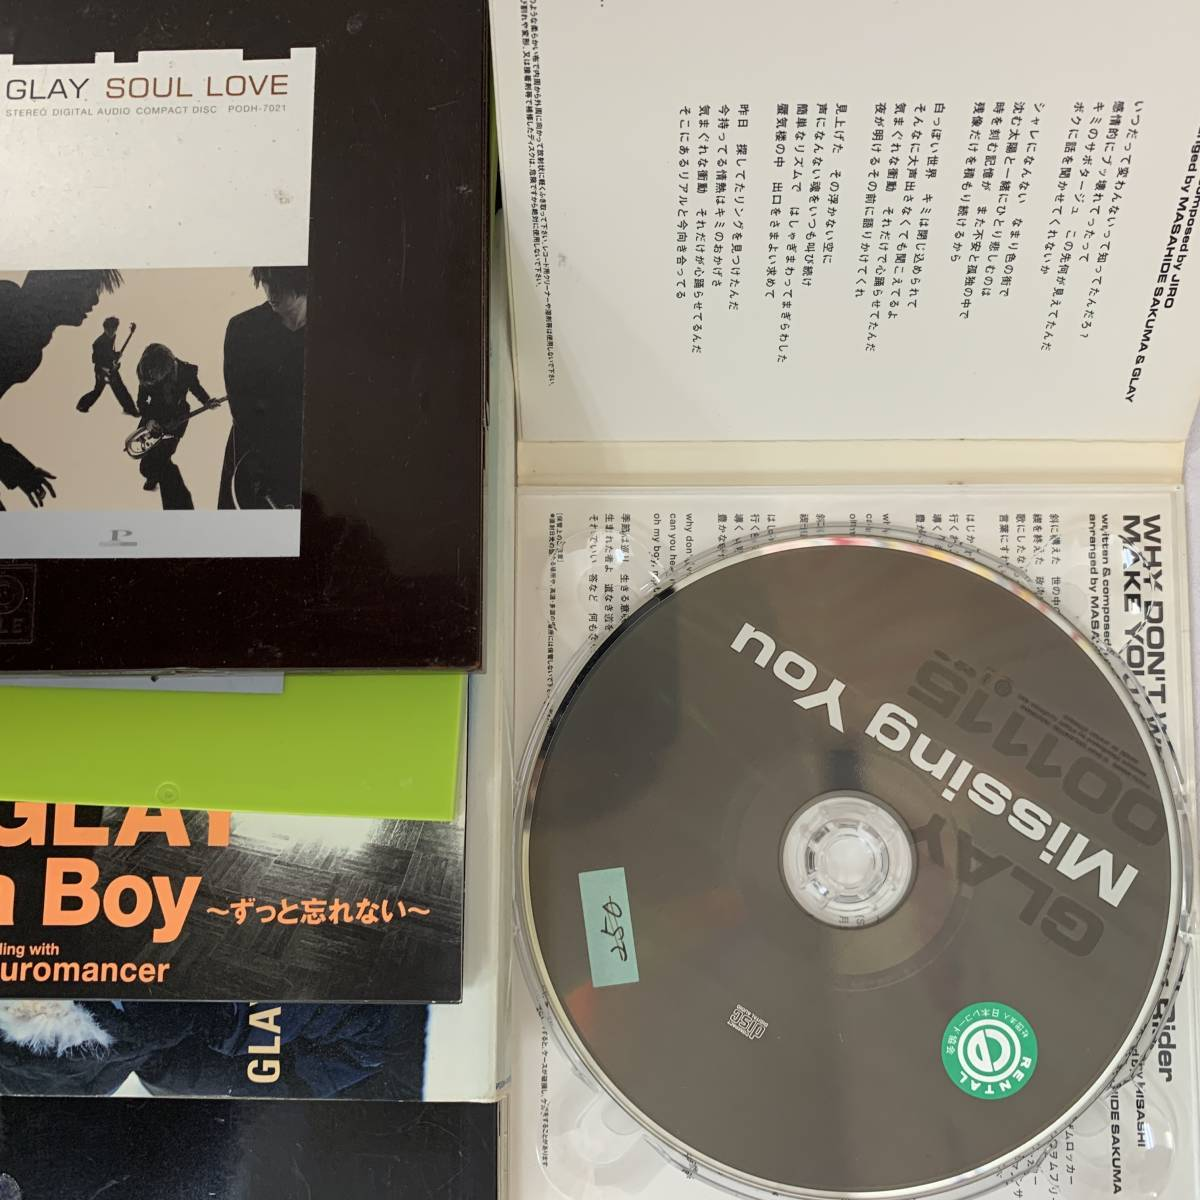 GLAY 口唇、REVIEW、Missing You、Soul Love、誘惑、a Boy、Winter,again、Be with You、However、9枚まとめて_画像8